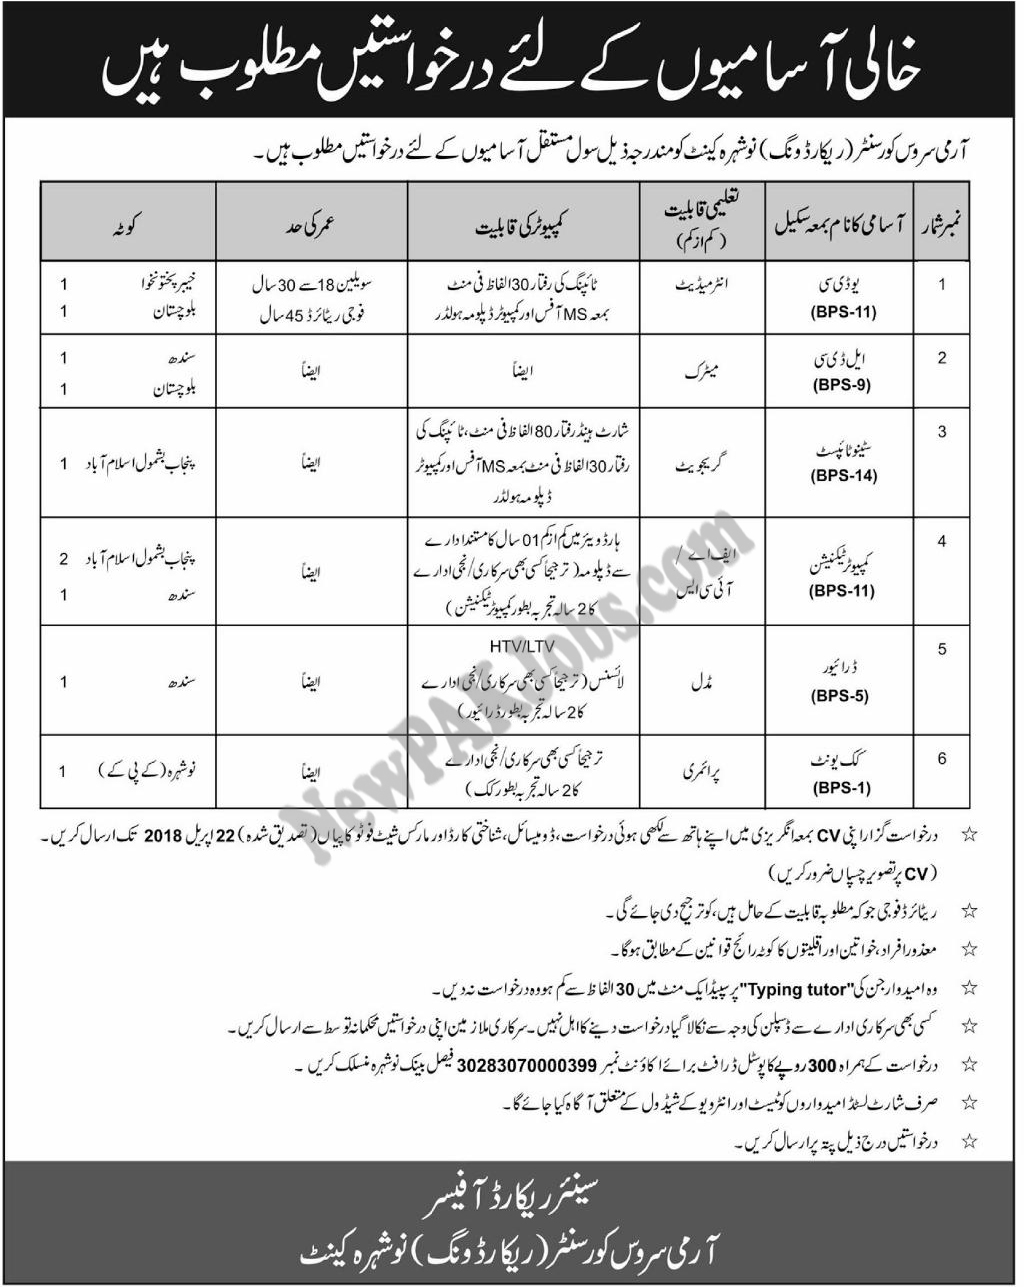 Army Jobs in Nowshera Cantt for Civilians April 2018